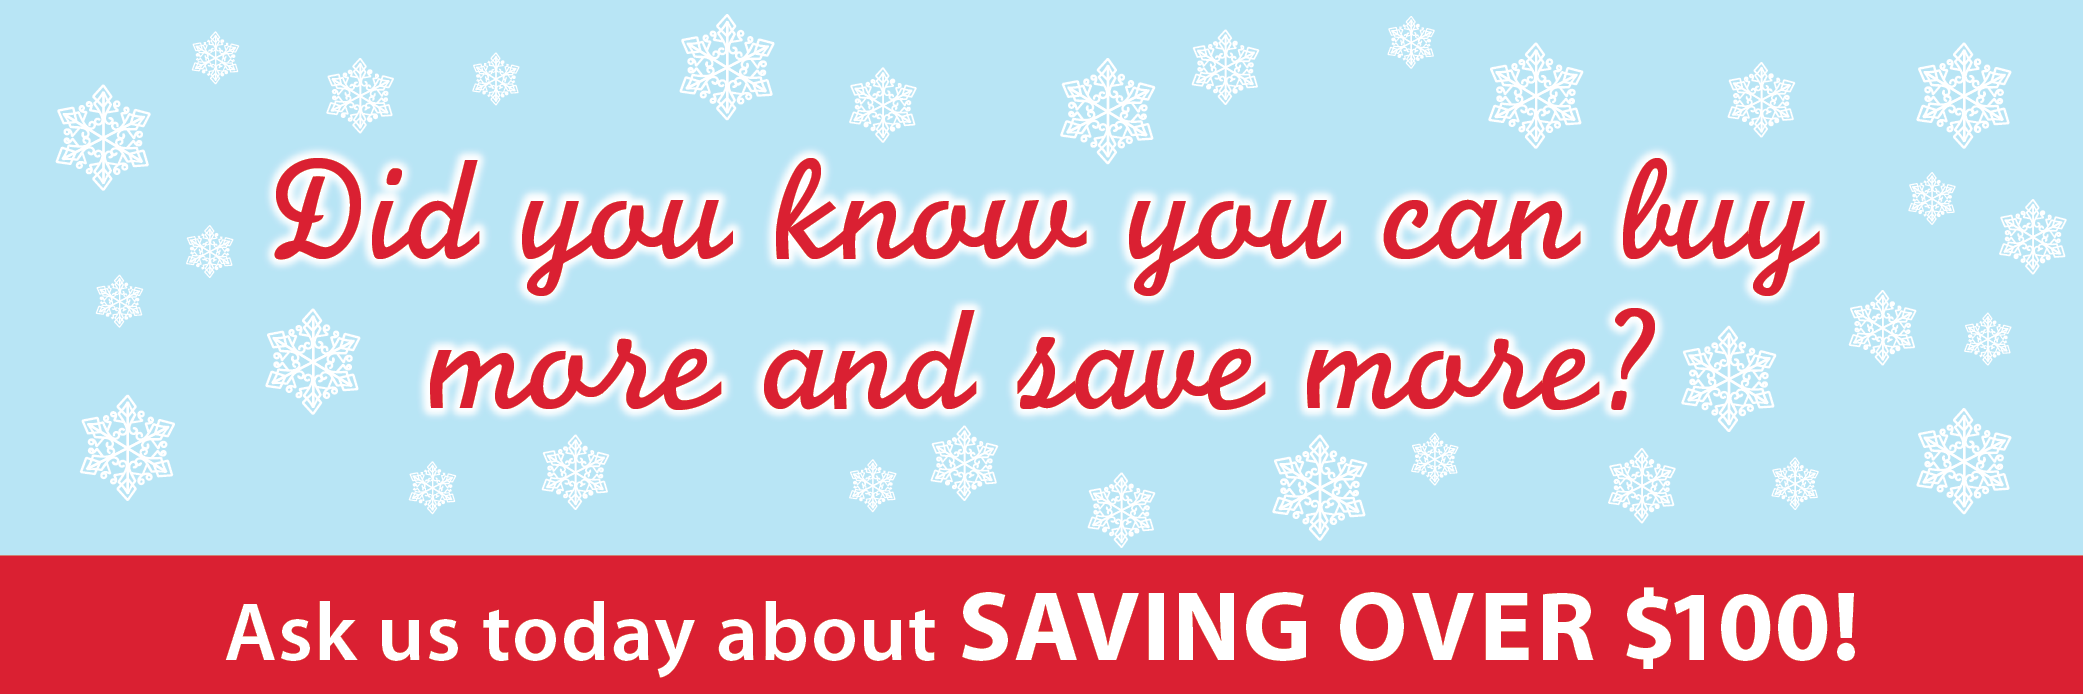 Ask us today about saving over $100!